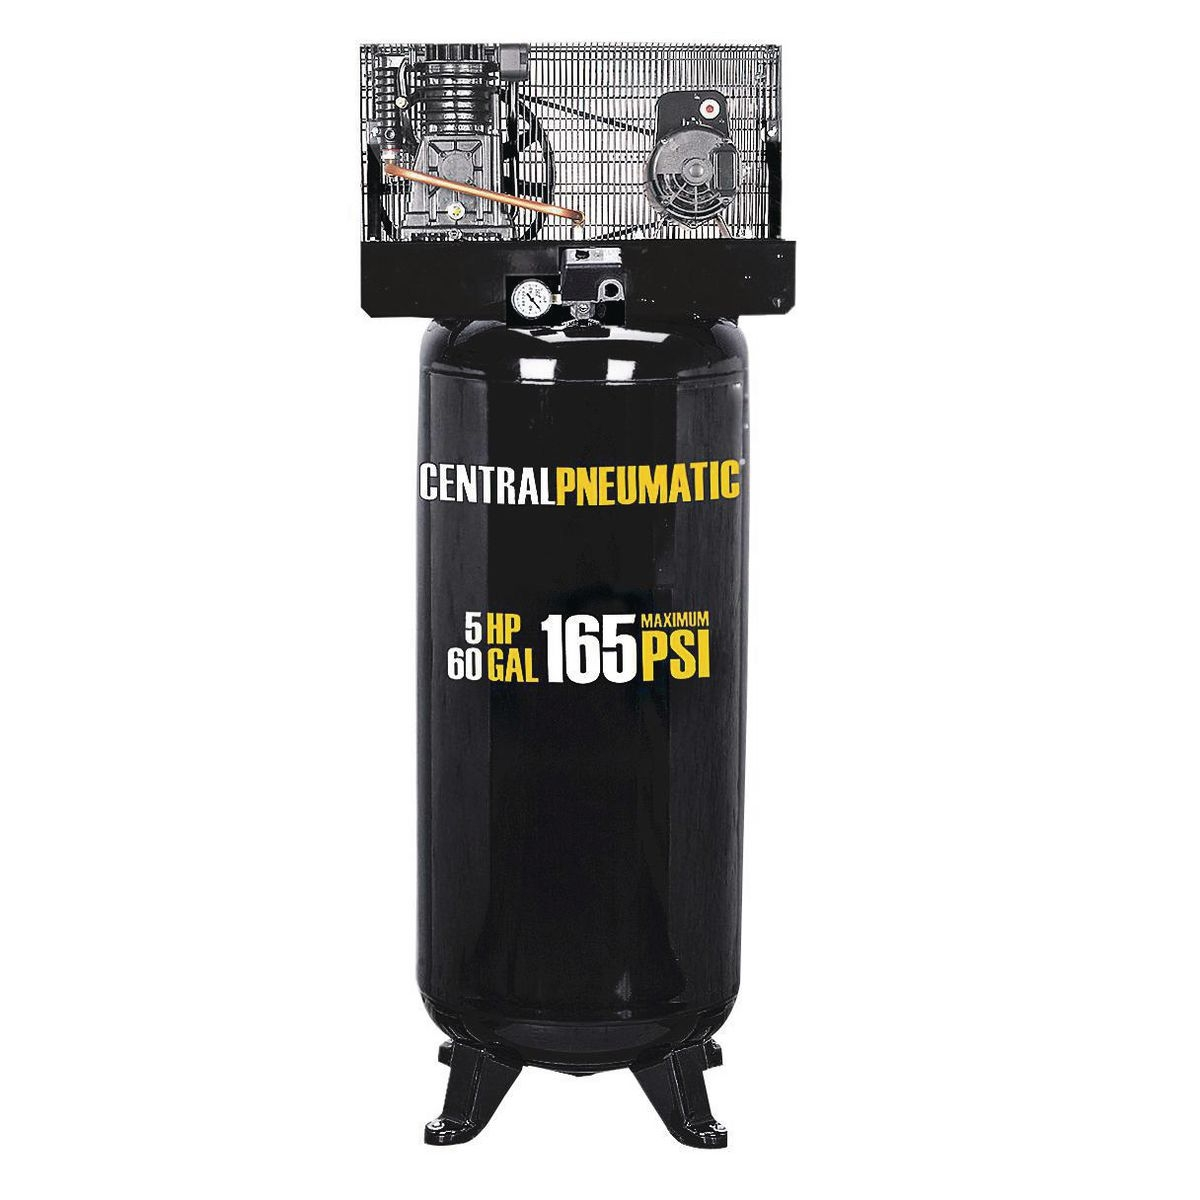 60 Gallon Air Compressor 2 Stage 5 Hp 165 Psi